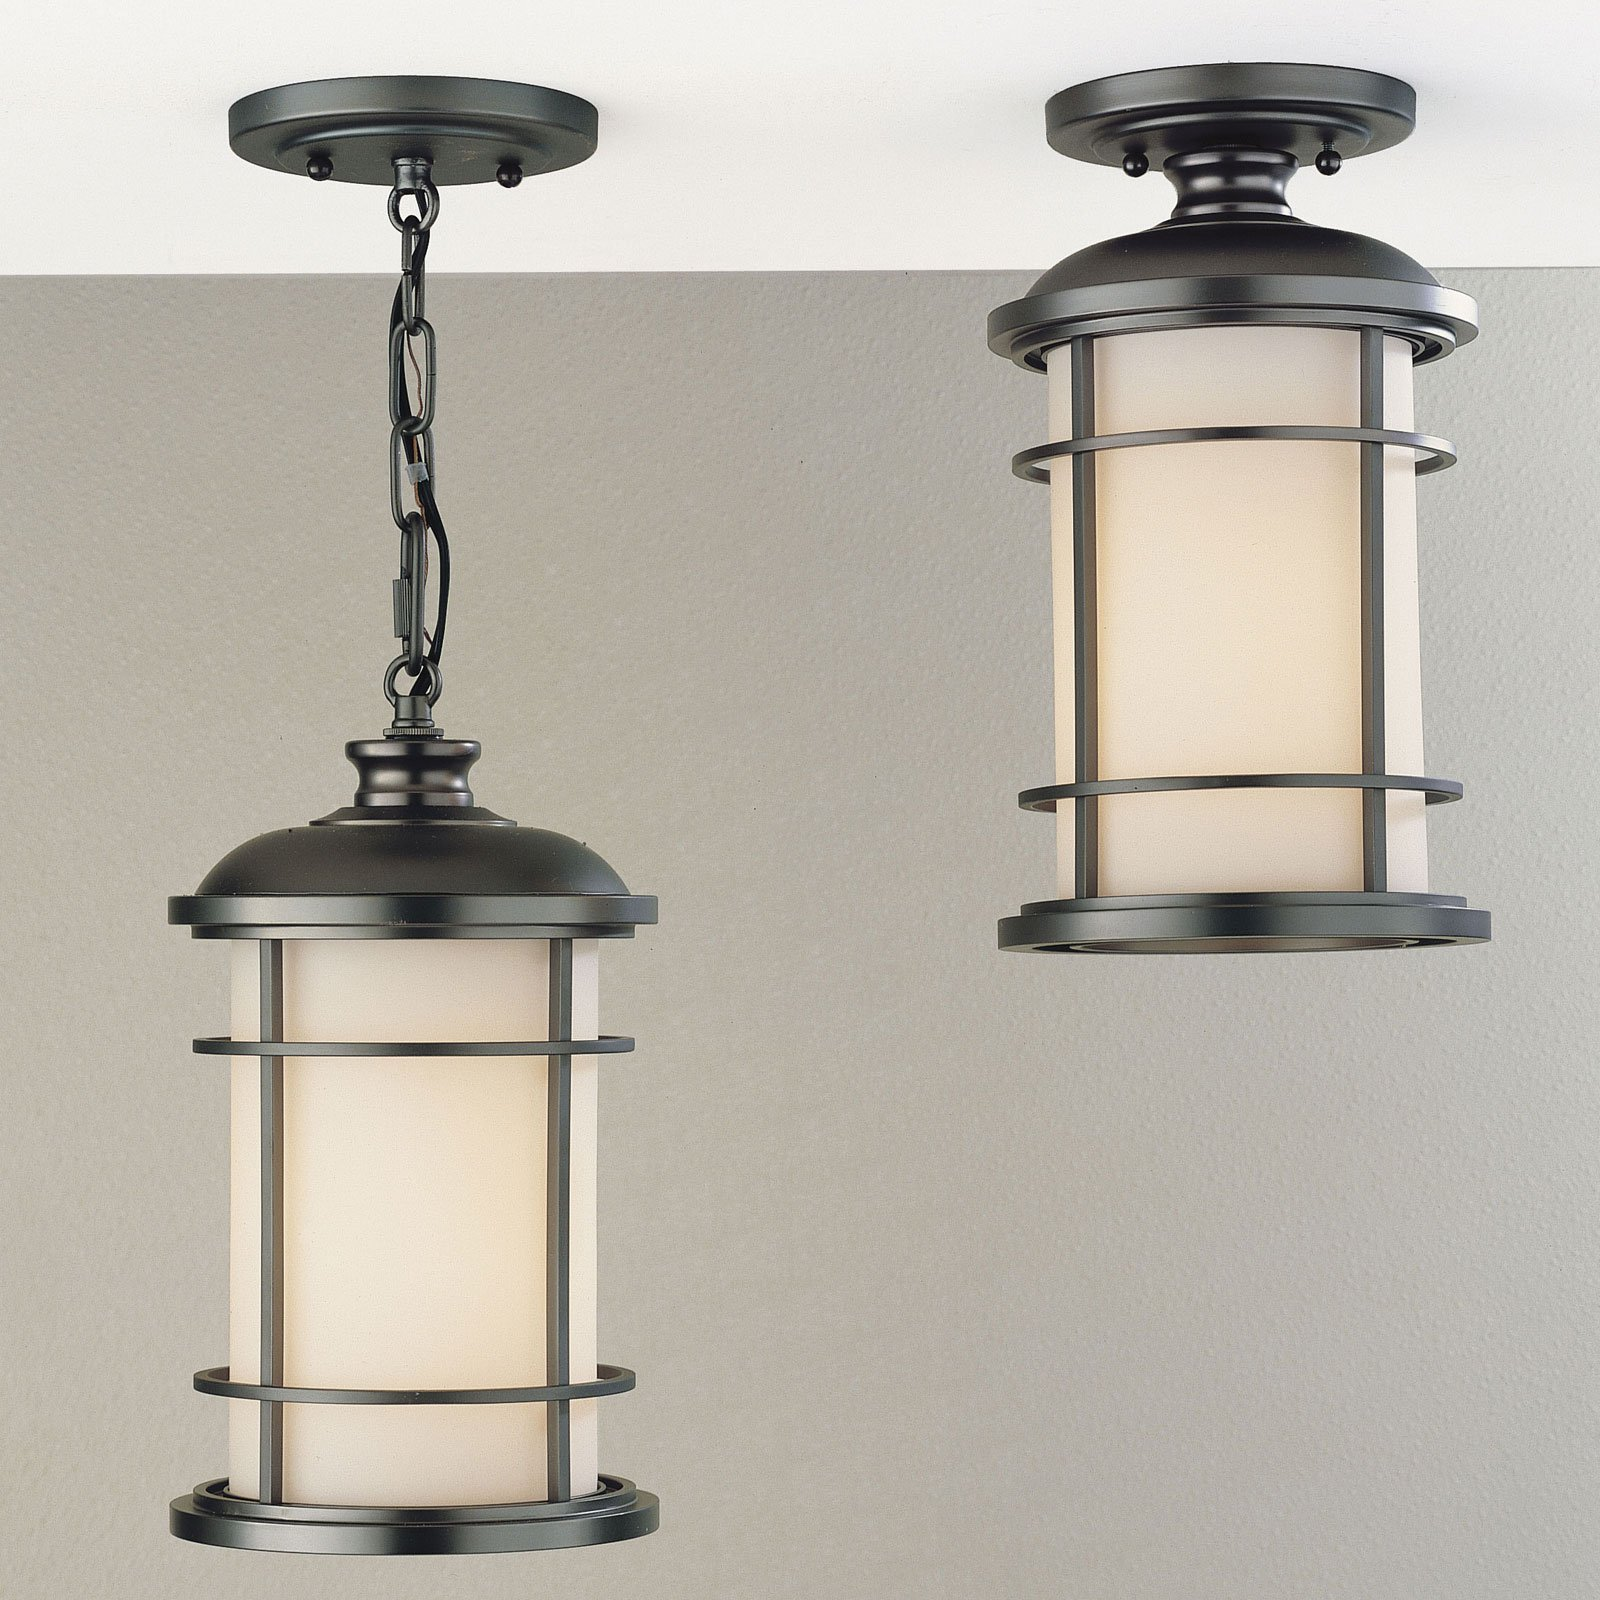 Feiss Lighthouse Outdoor Hanging/Ceiling Light - 12.5H in. Burnished Bronze